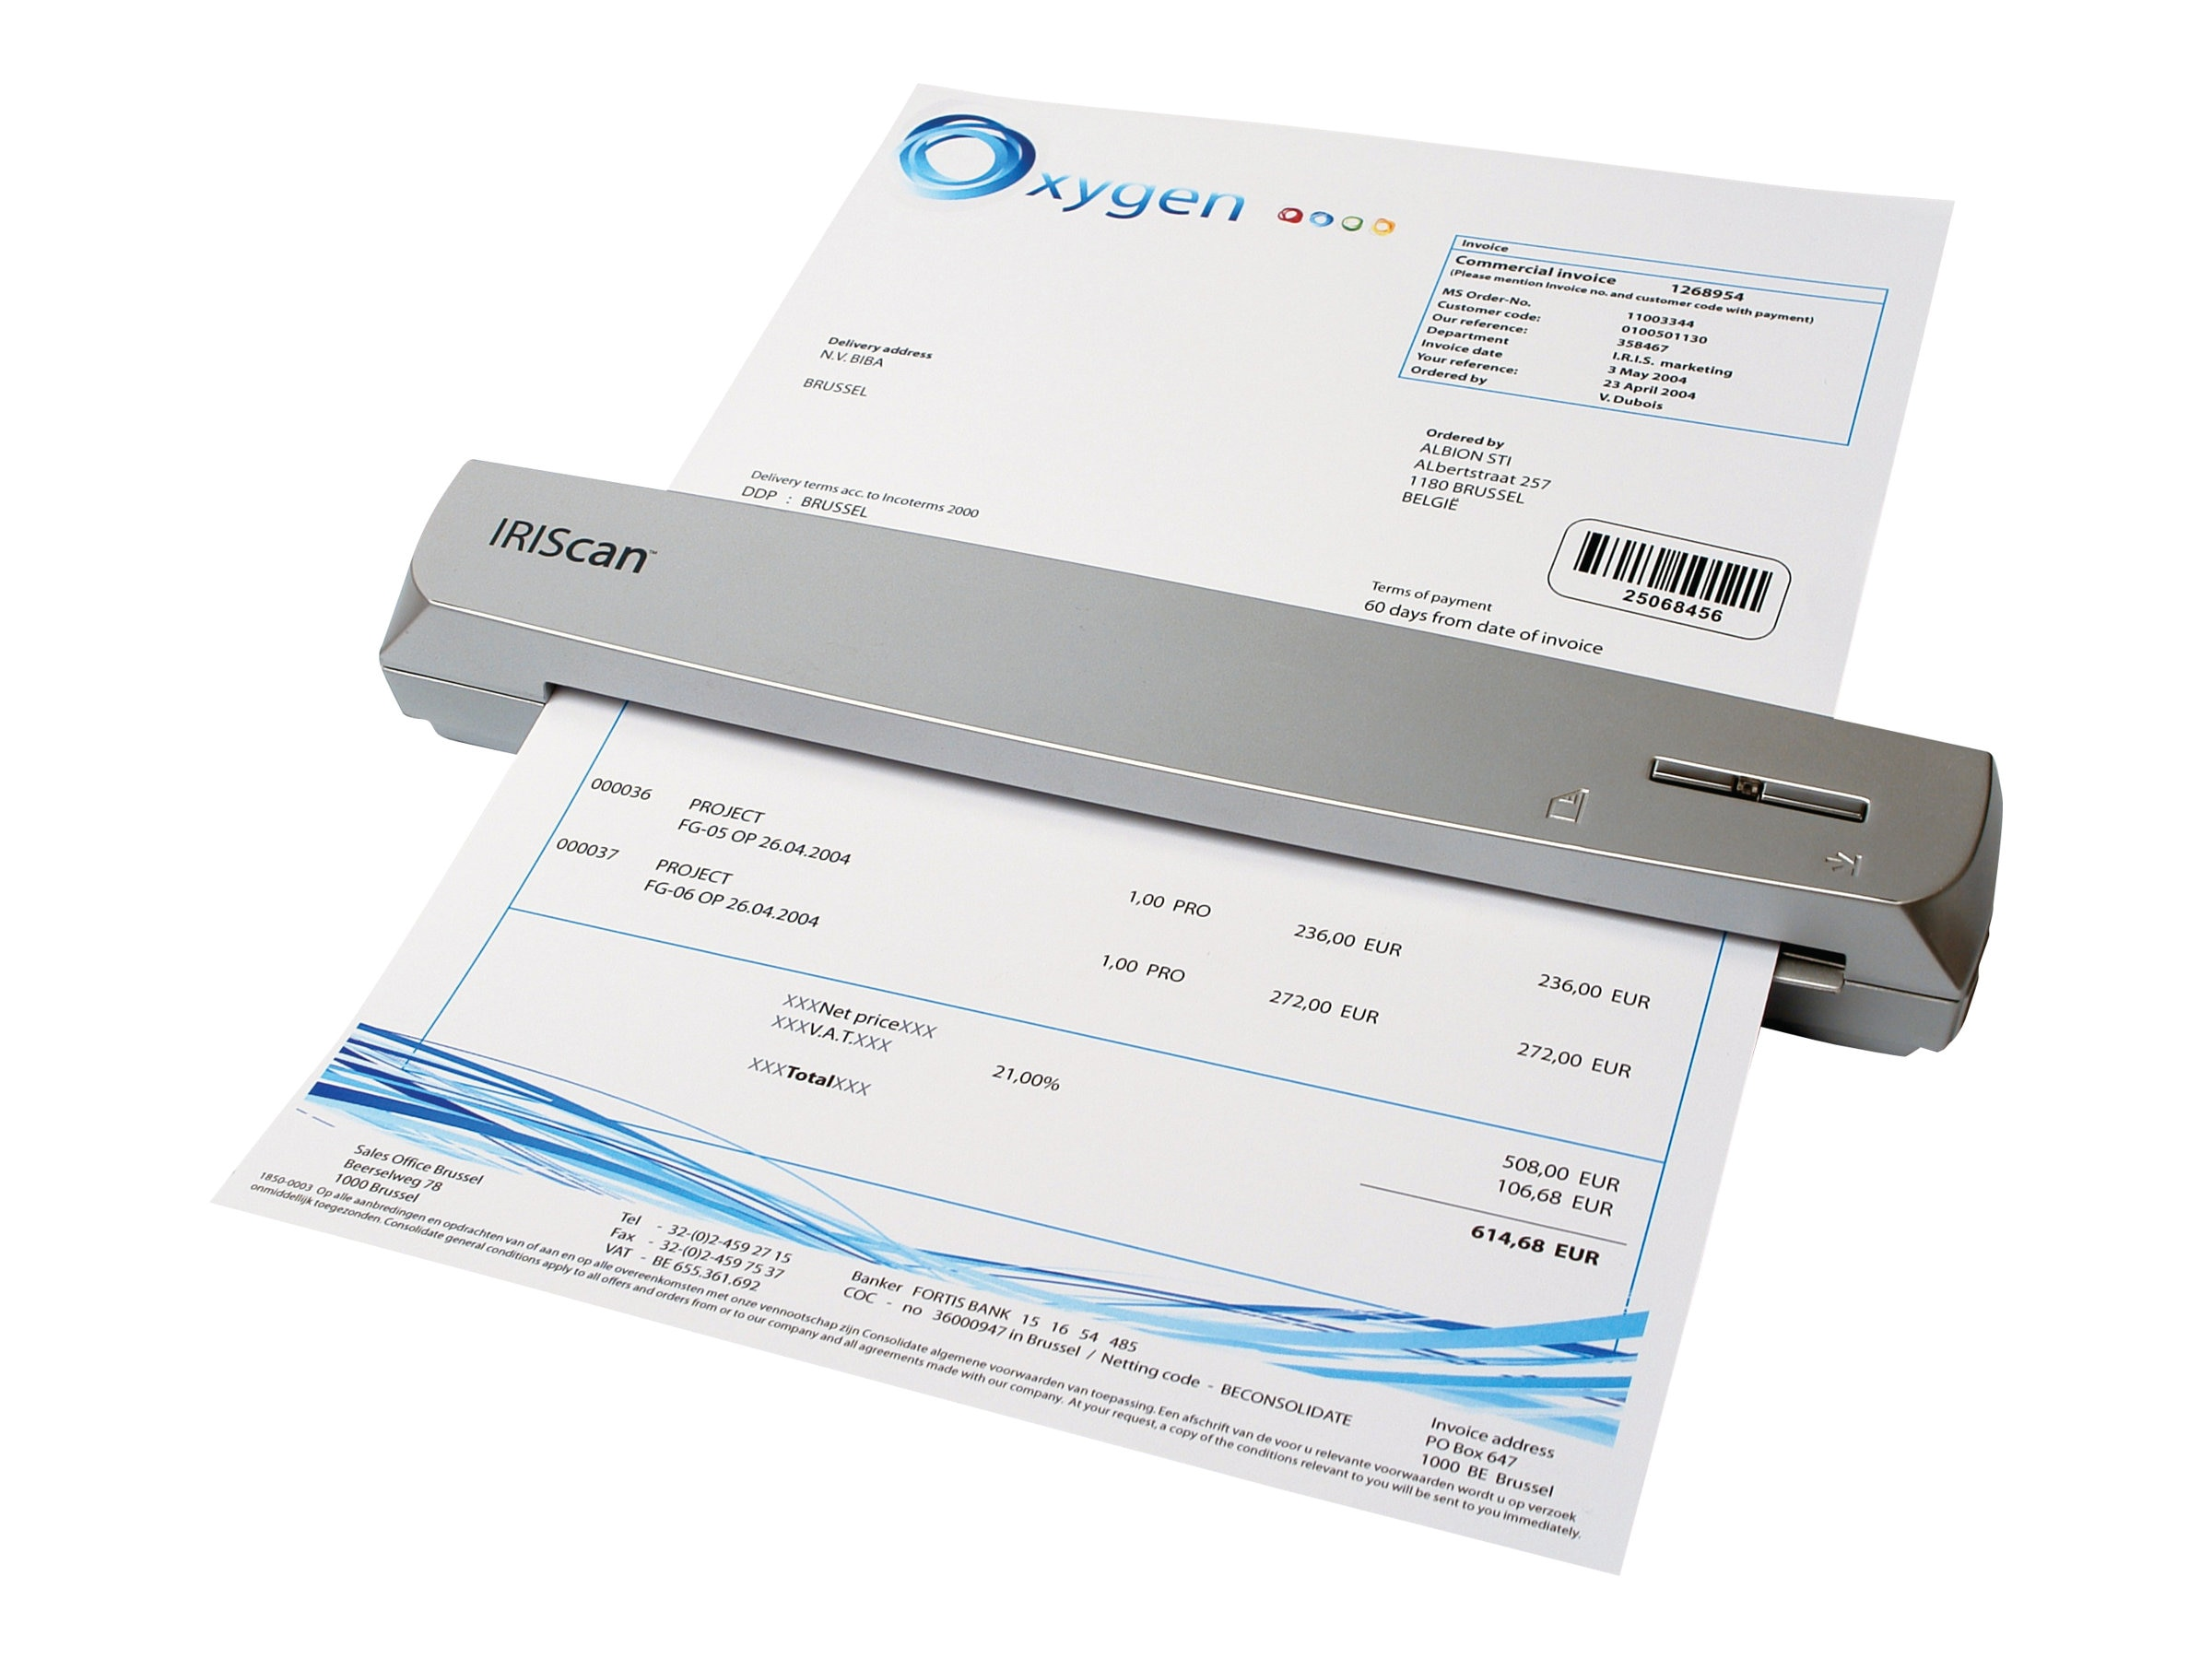 IRIS IRISCan Express 3 USB Multi-purpose Color Scanner